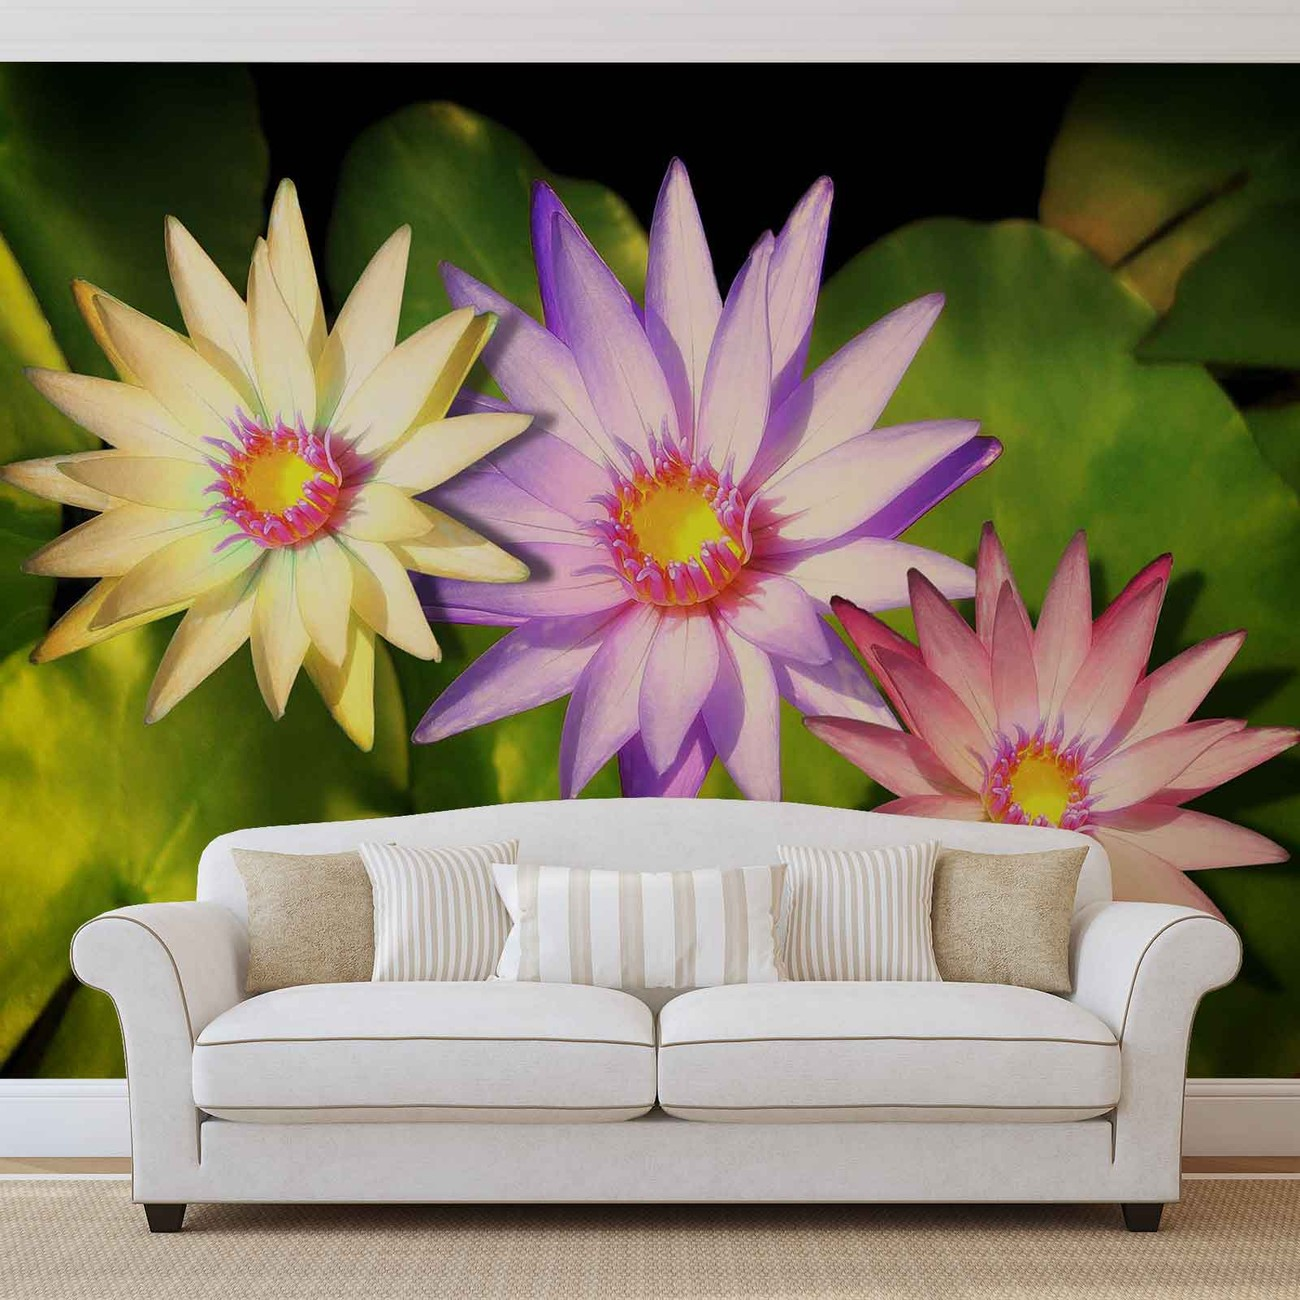 Flowers natur wall paper mural buy at europosters for Mural of flowers